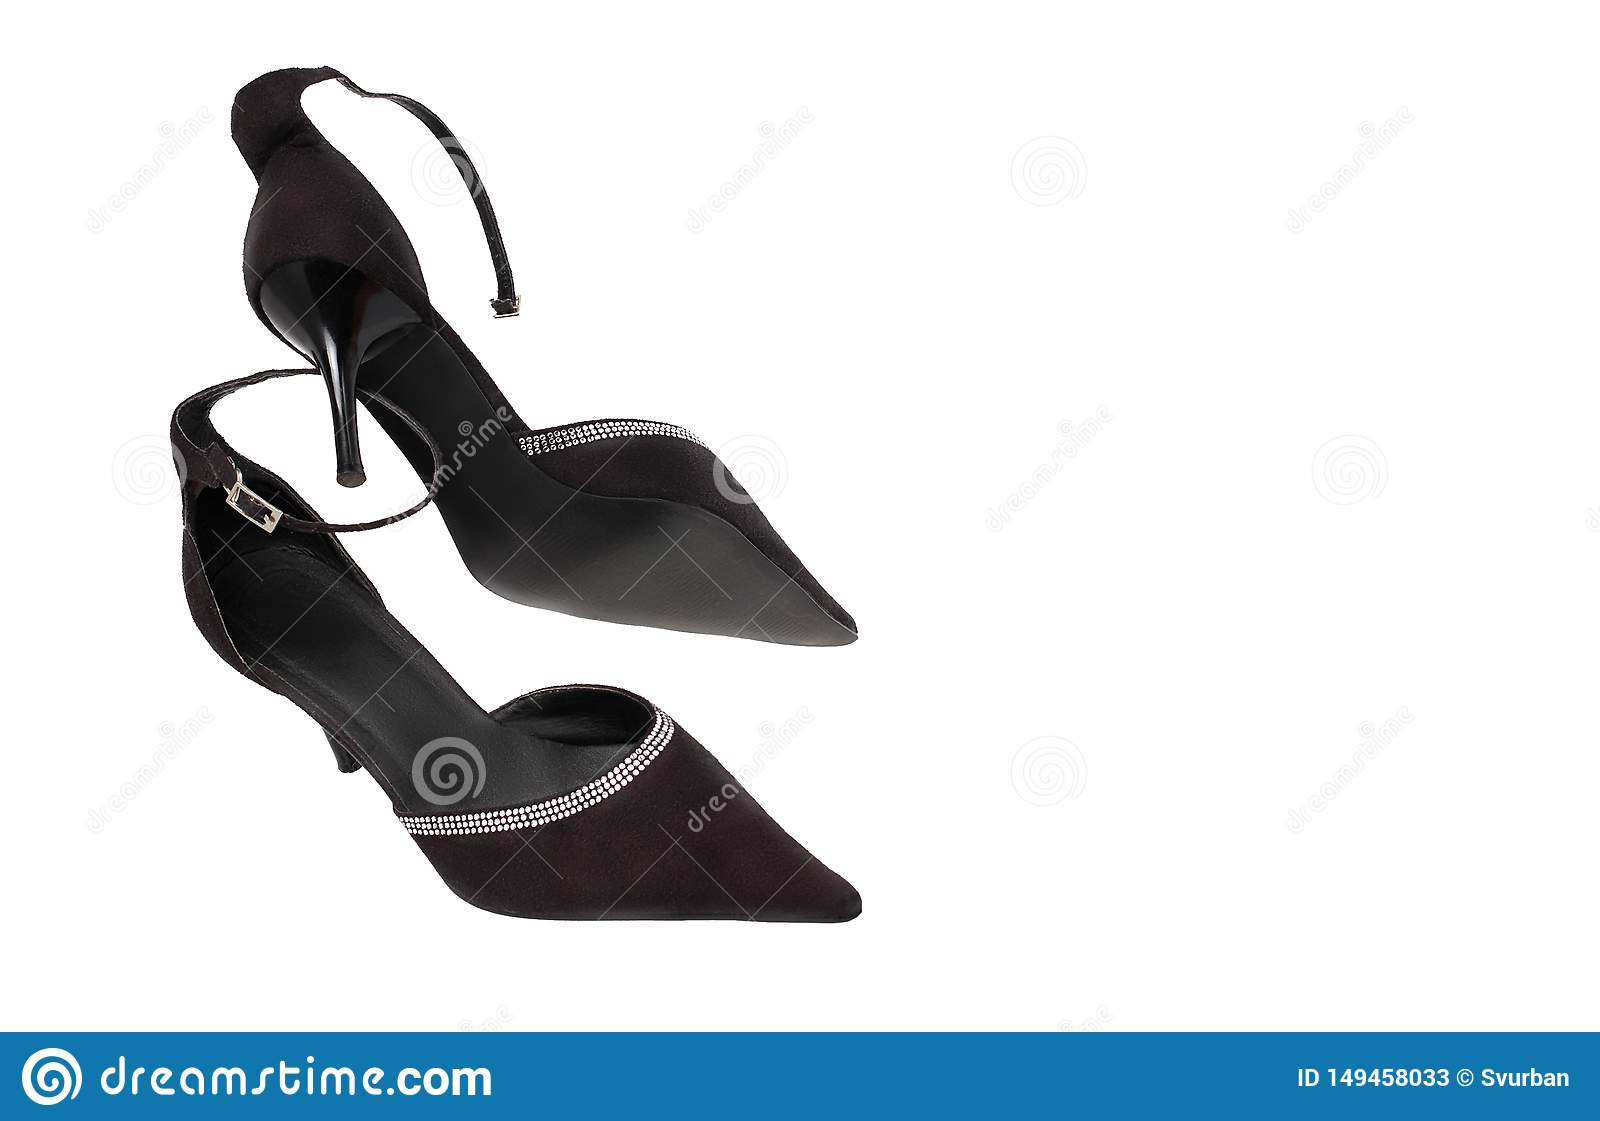 Black shoes on a white background, pointed toe, stiletto heels